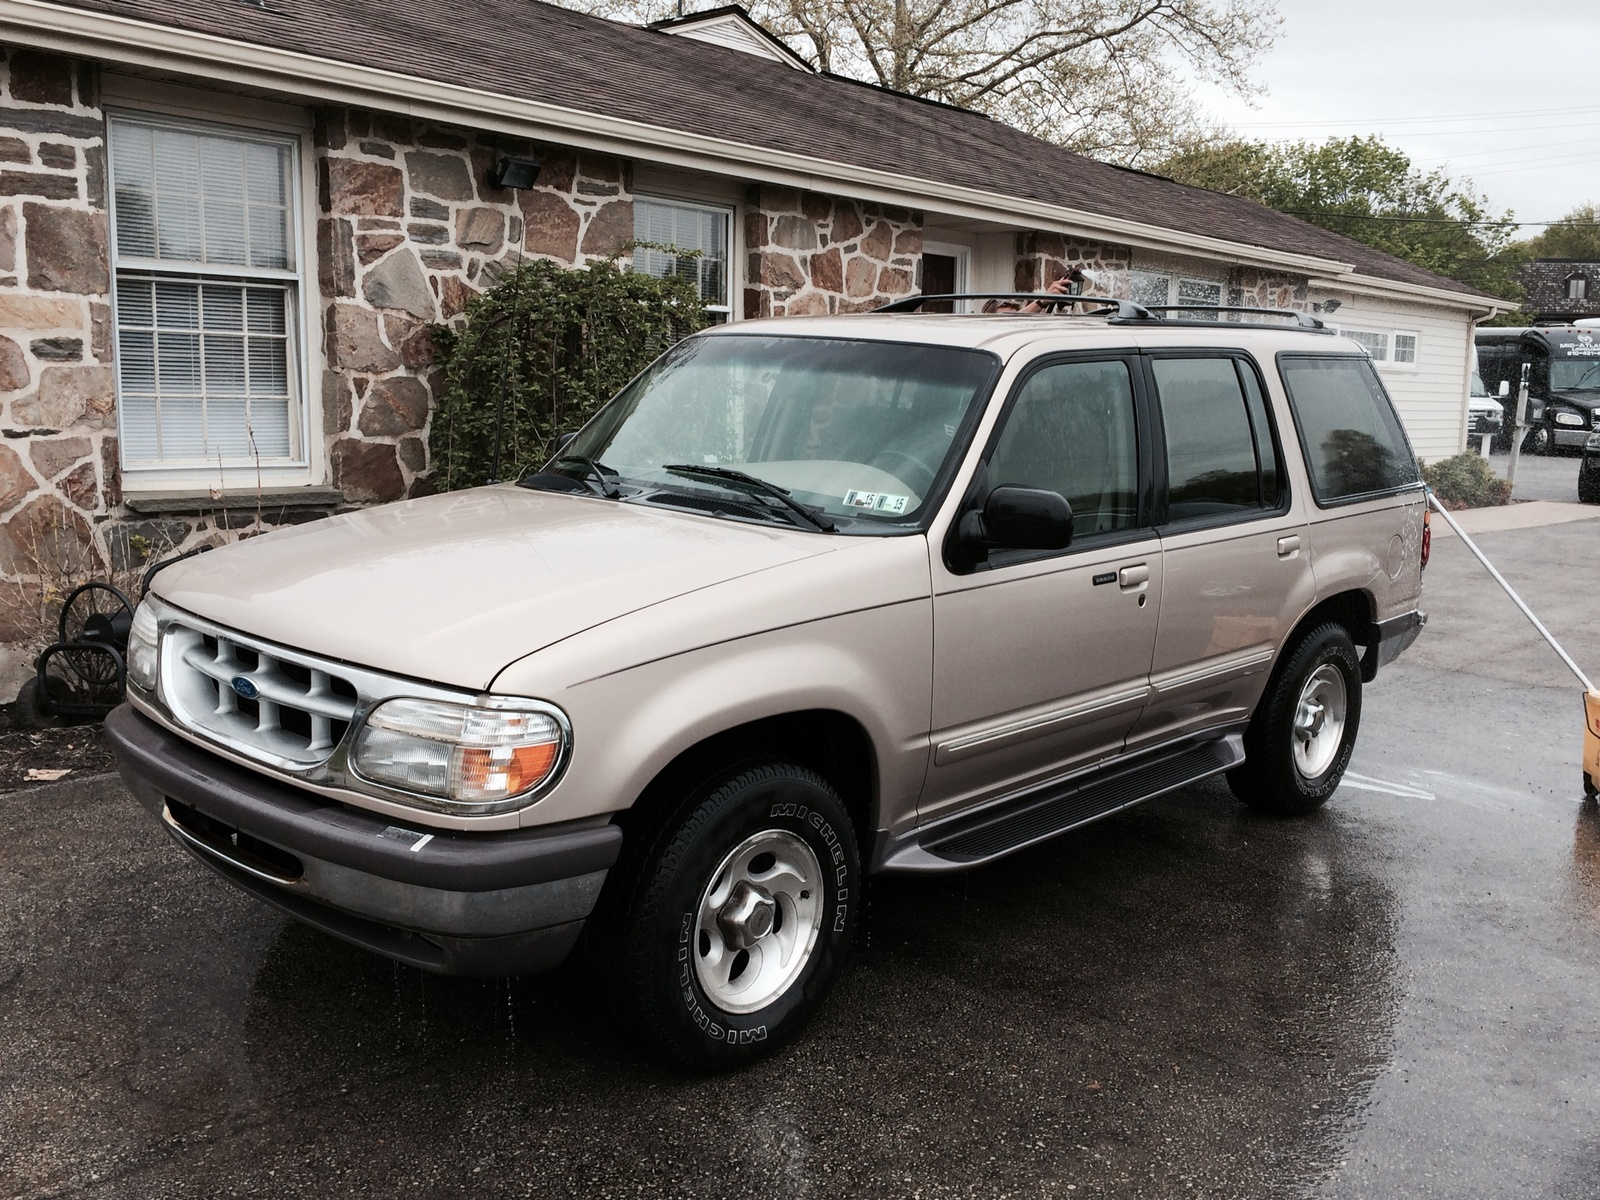 Ford explorer 4 9 1997 technical specifications interior - Ford explorer exterior dimensions ...